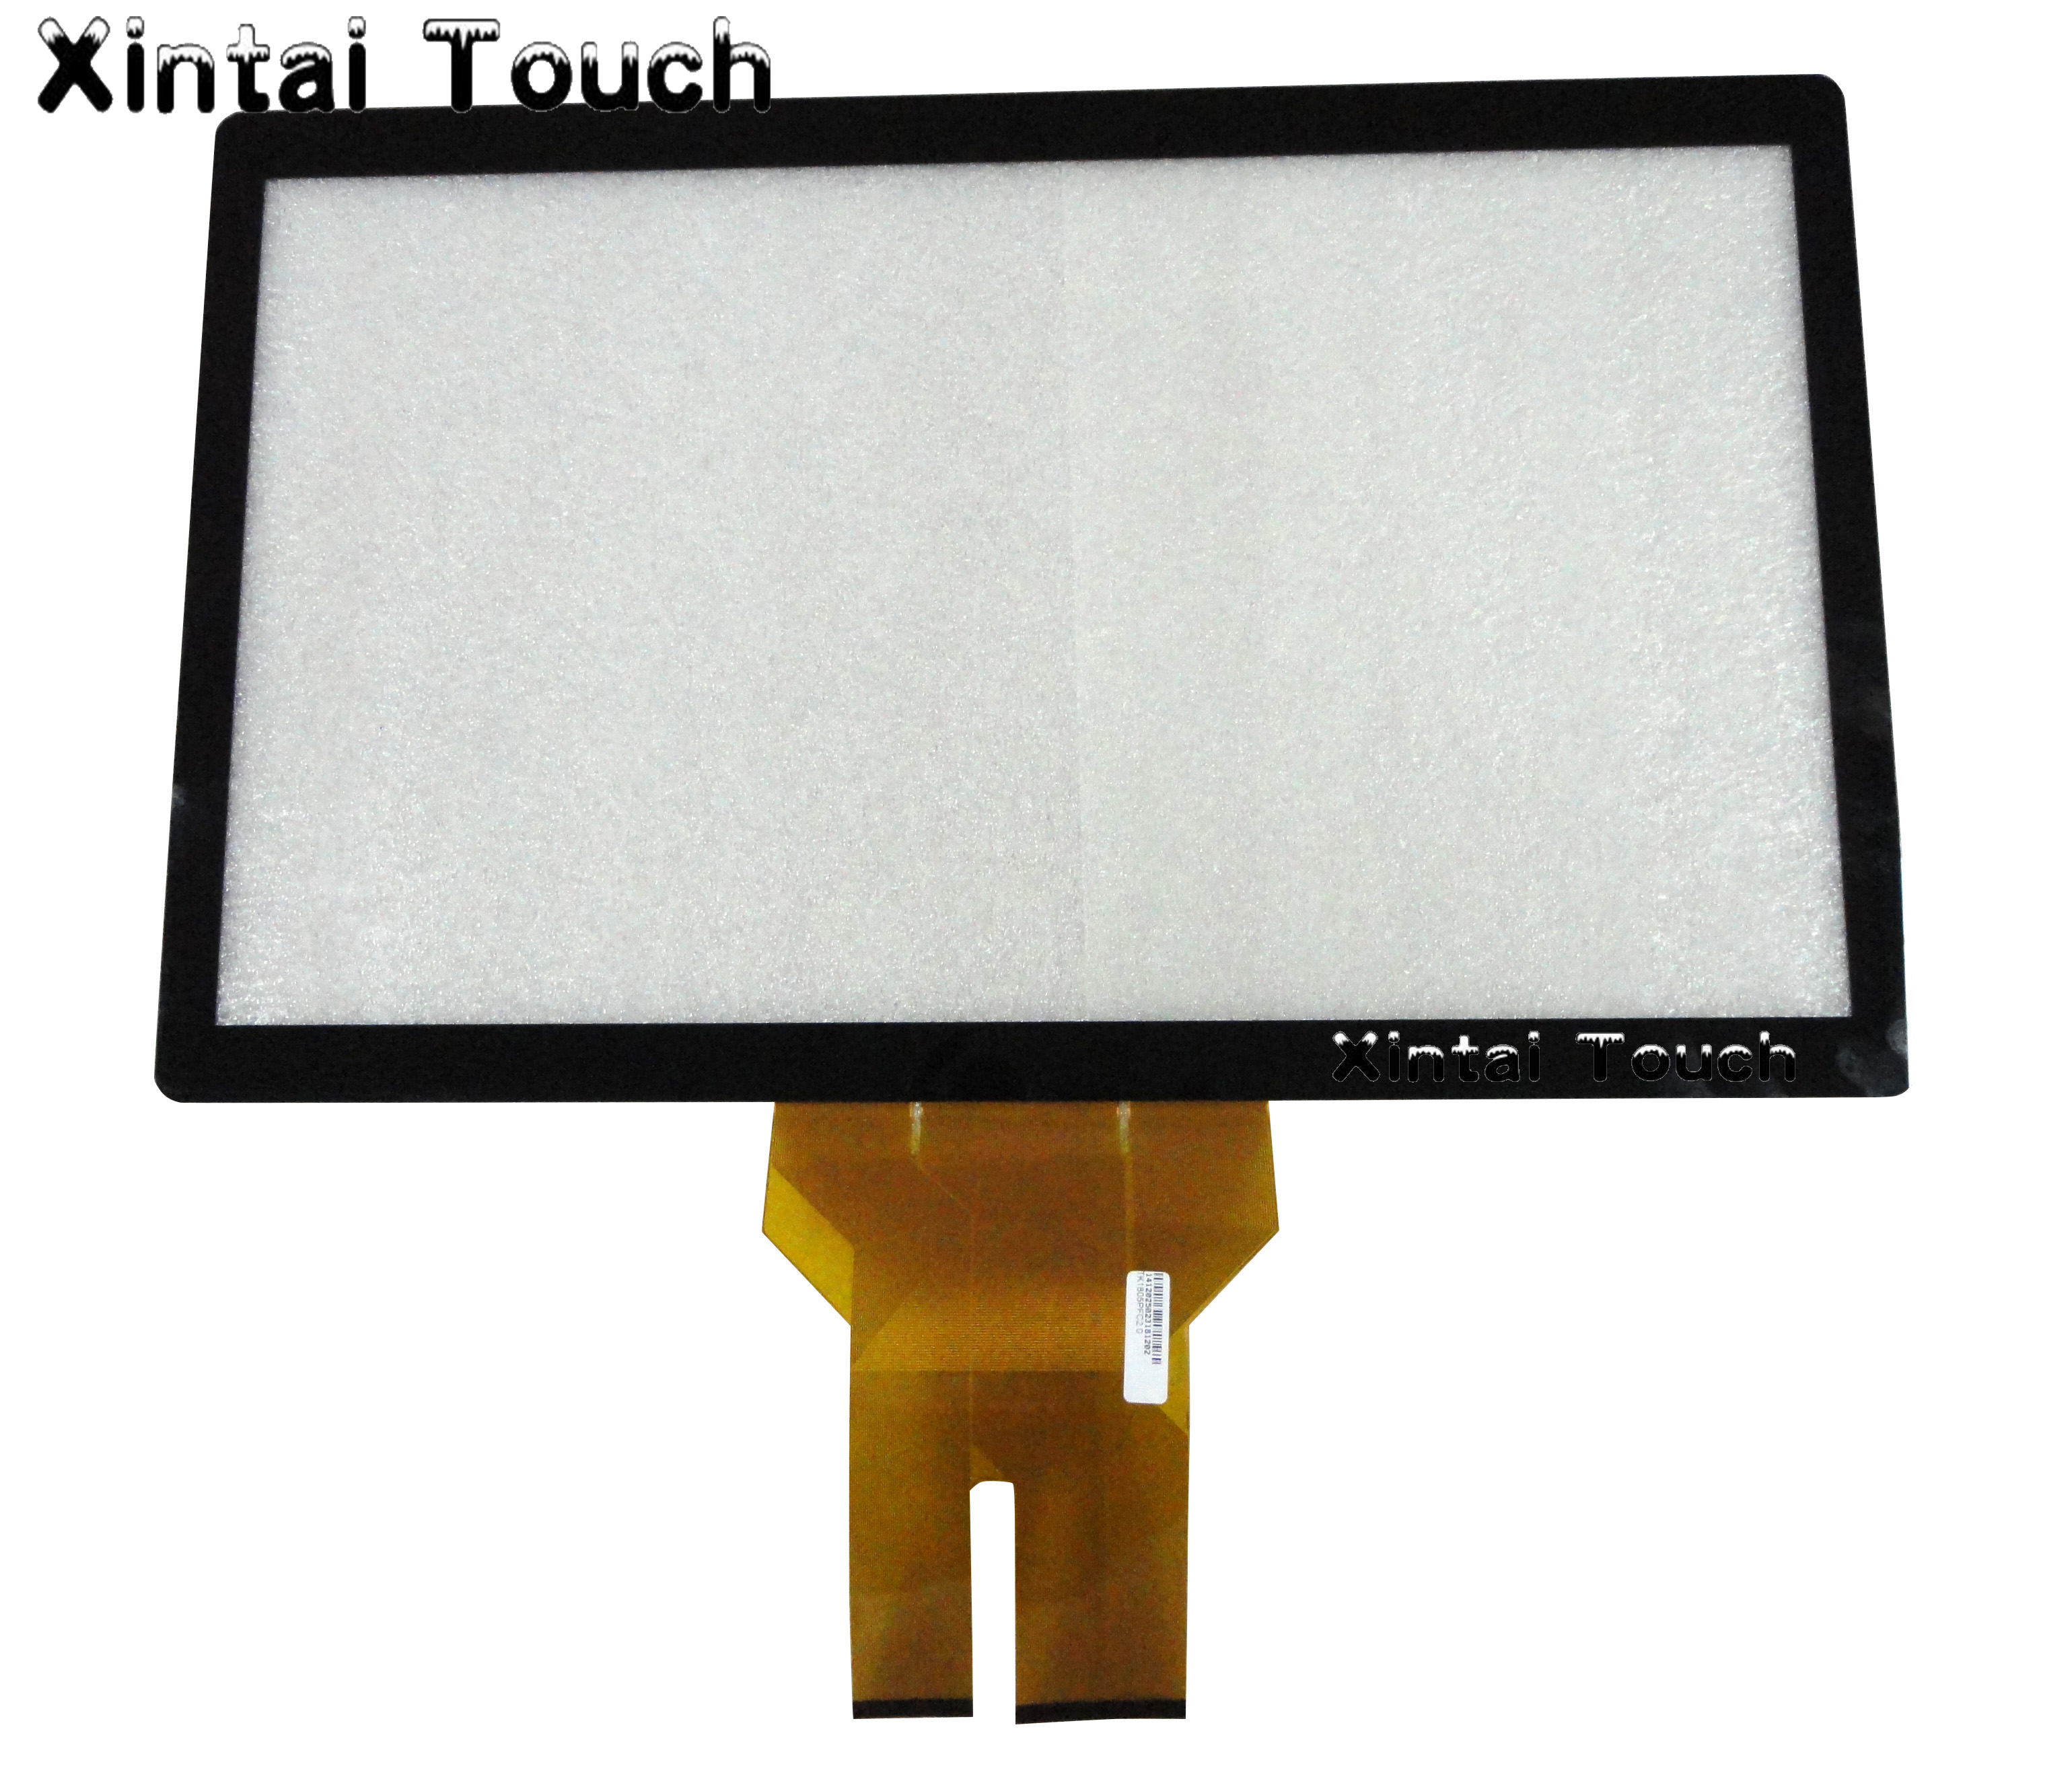 BEST PRICE,fast shipping! 19 usb capacitive touch screen overlay panel kit, multi touch screen with 10 points, driver free nrx0100 0701r touch panel fast shipping